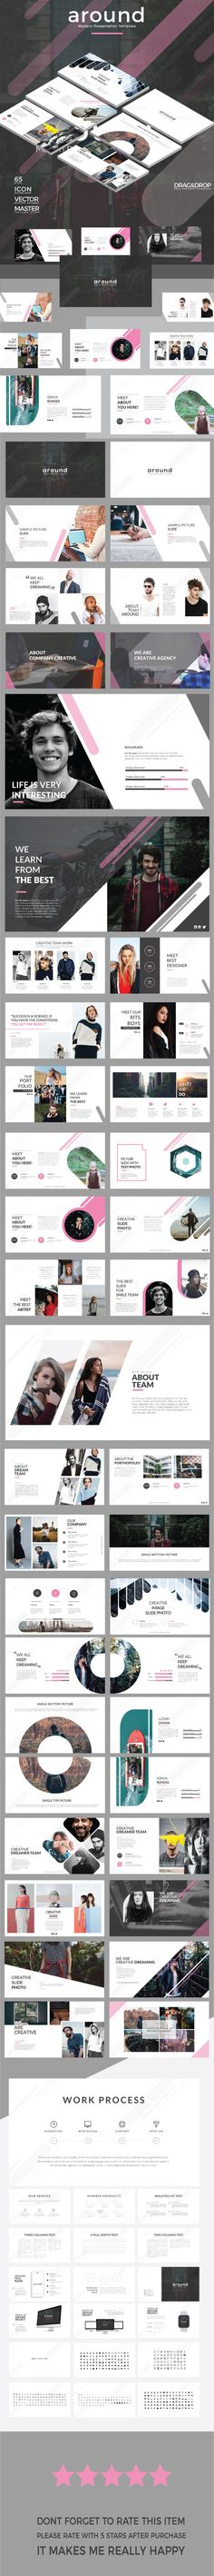 #around - modern keynote template - Business #Keynote Templates Download here: https://graphicriver.net/item/around-modern-keynote-template/19740865?ref=alena994